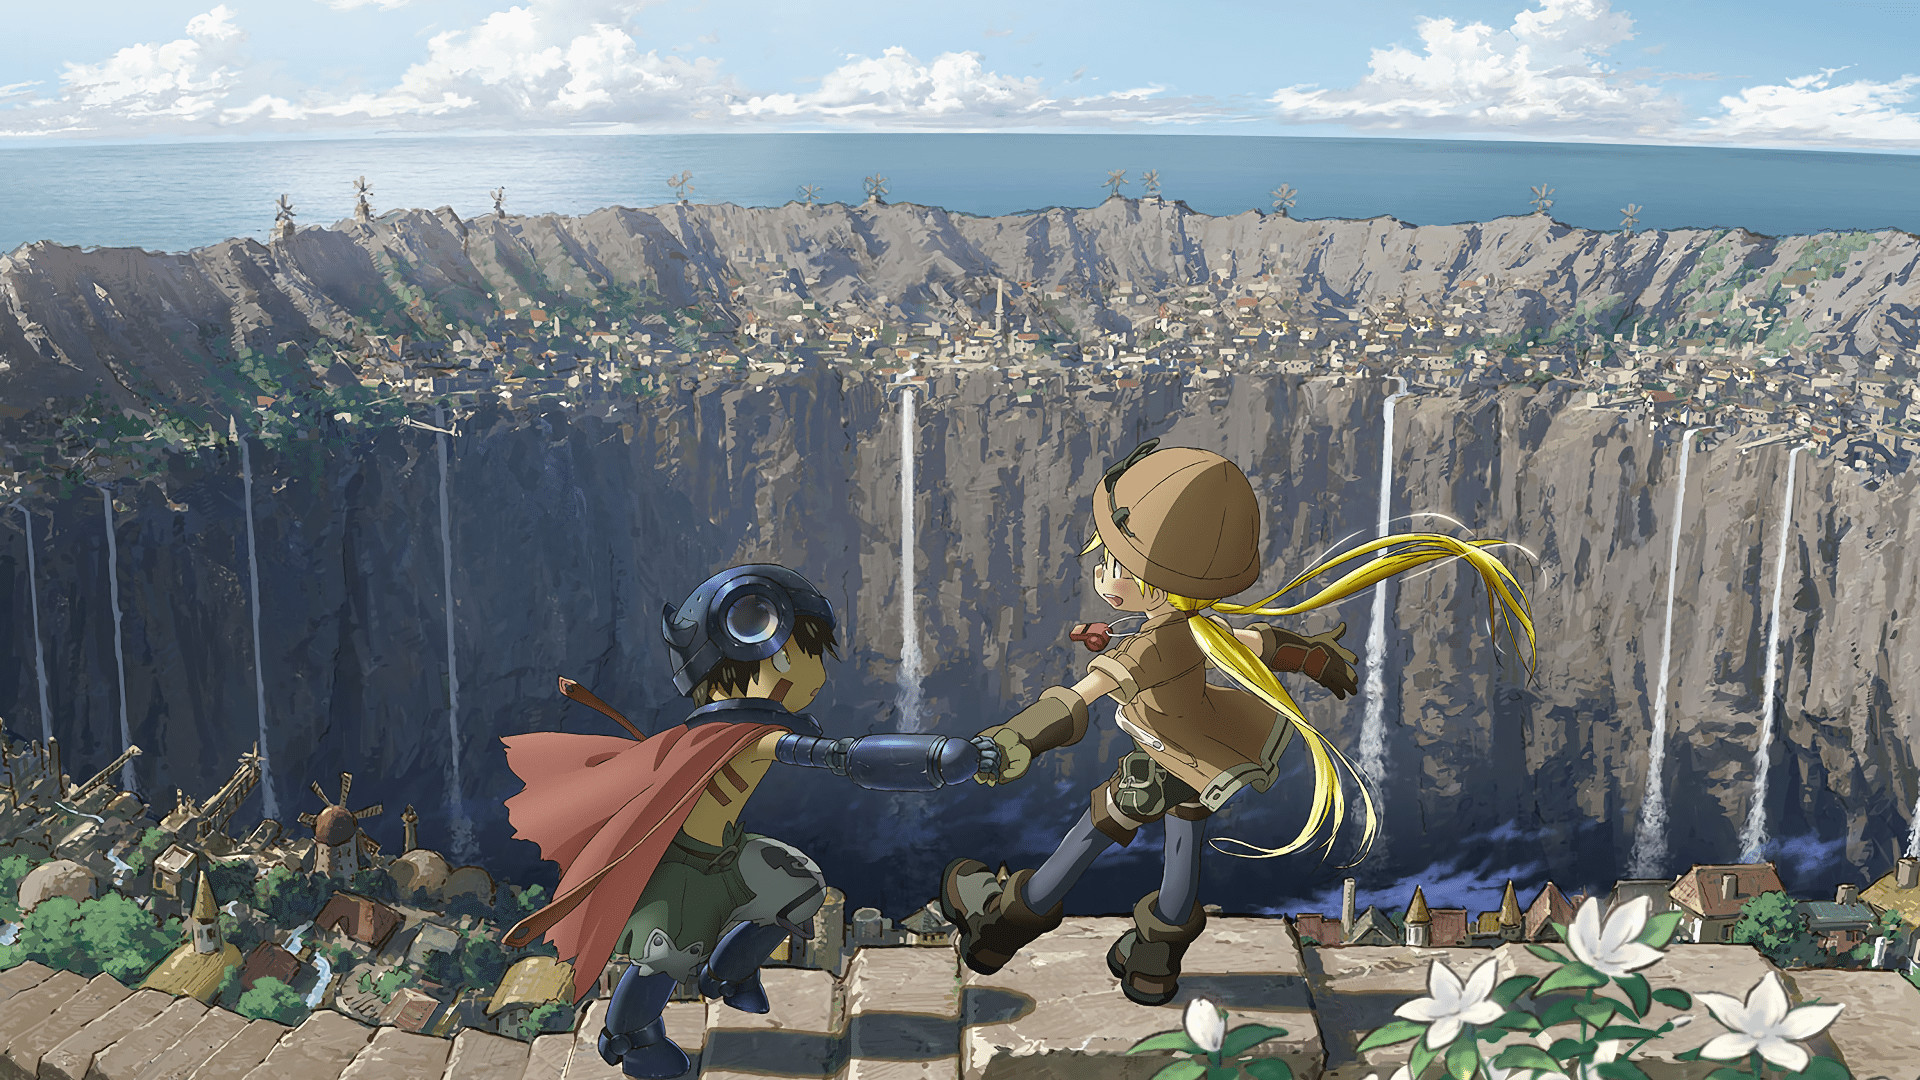 Res: 1920x1080, Ultrawide (2560x1080) Version? (Made in Abyss) HD Wallpaper From Gallsource.